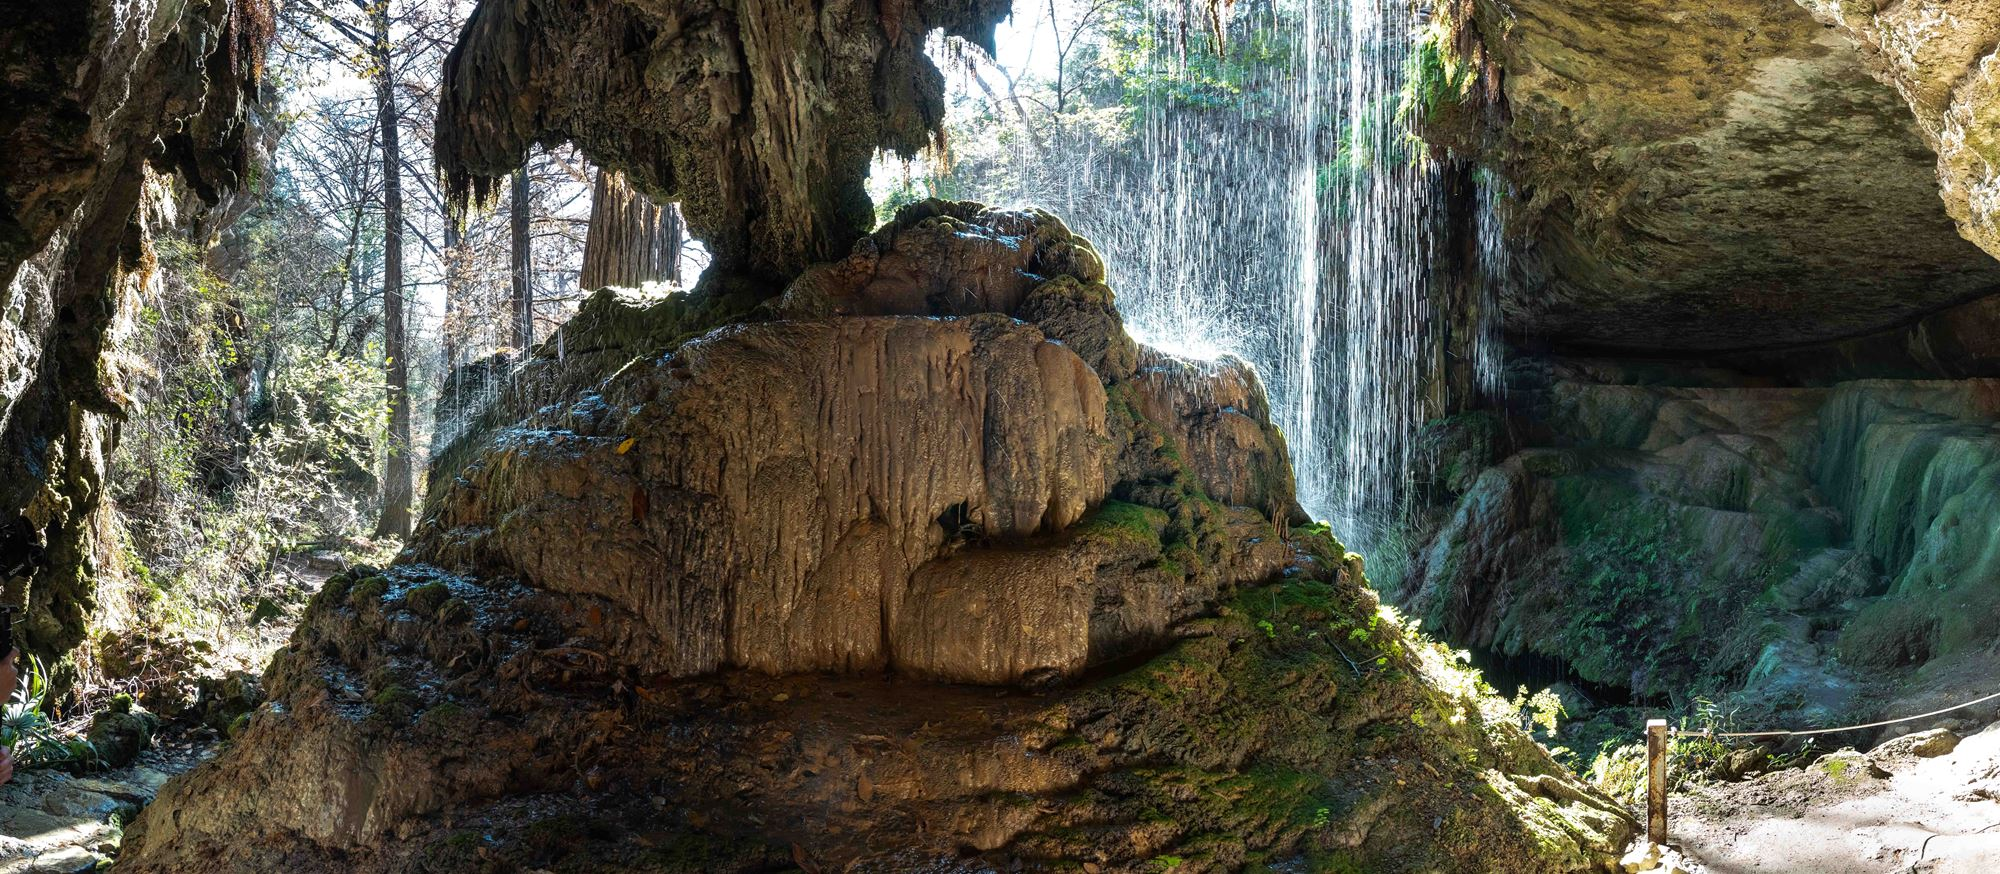 a panoramic image of a waterfall dripping on a stone